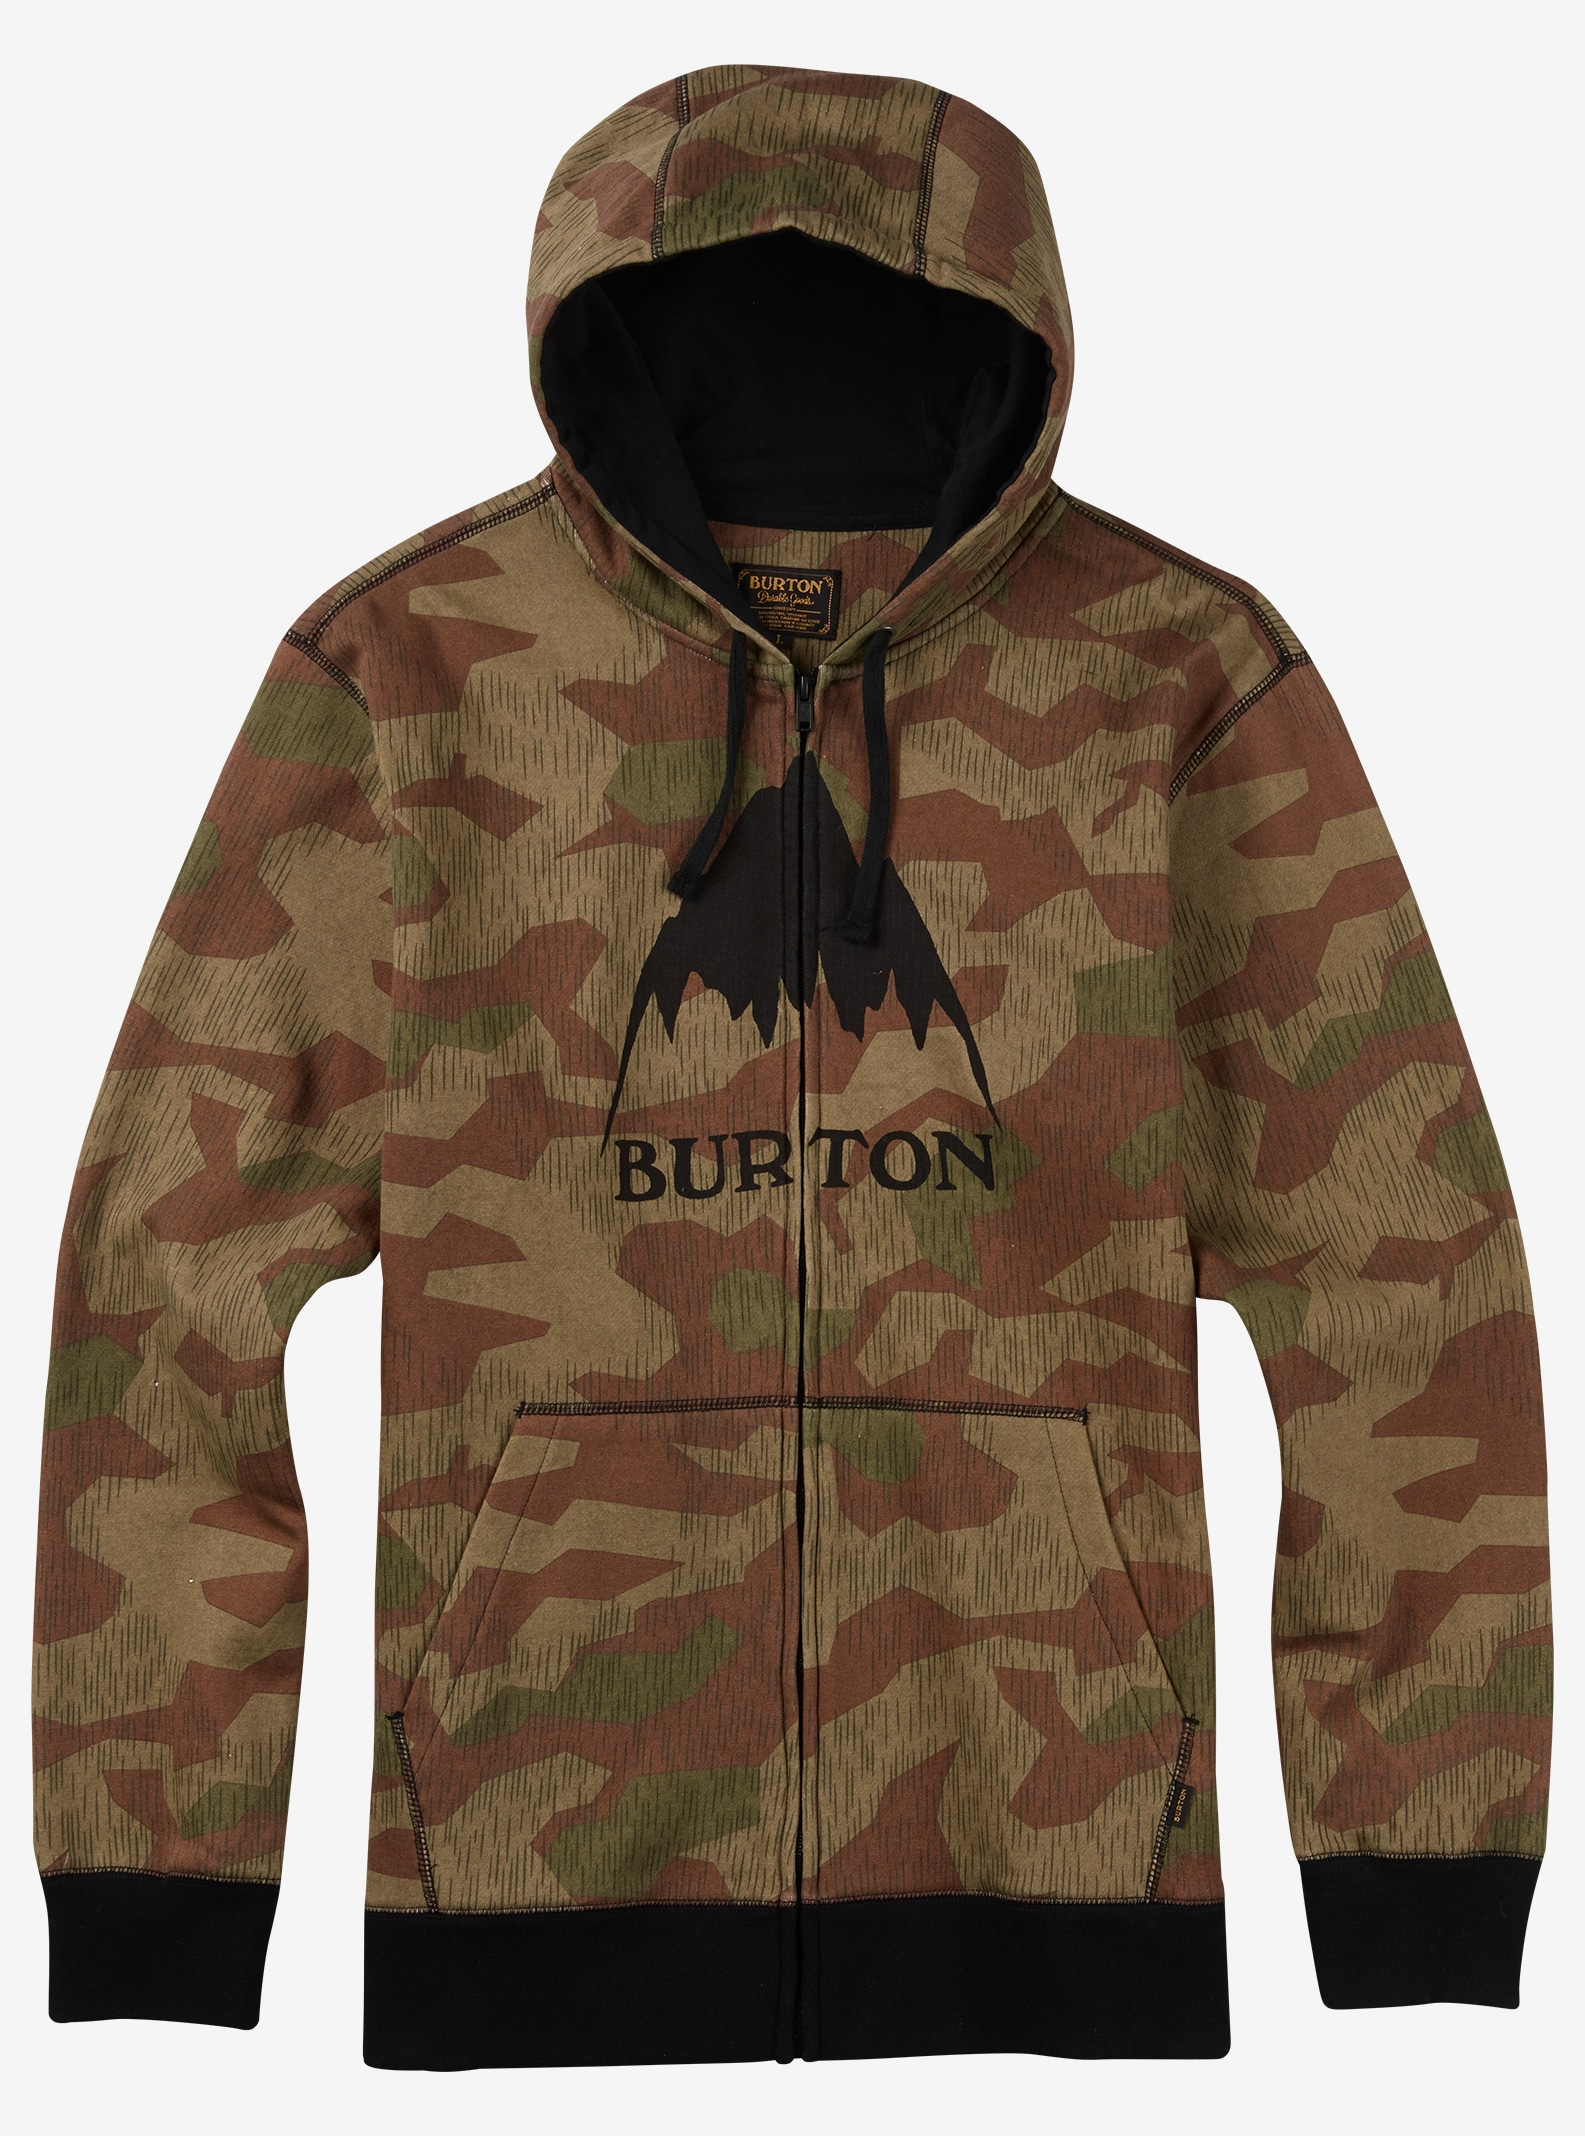 Burton Classic Mountain Full-Zip Hoodie shown in Splinter Camo